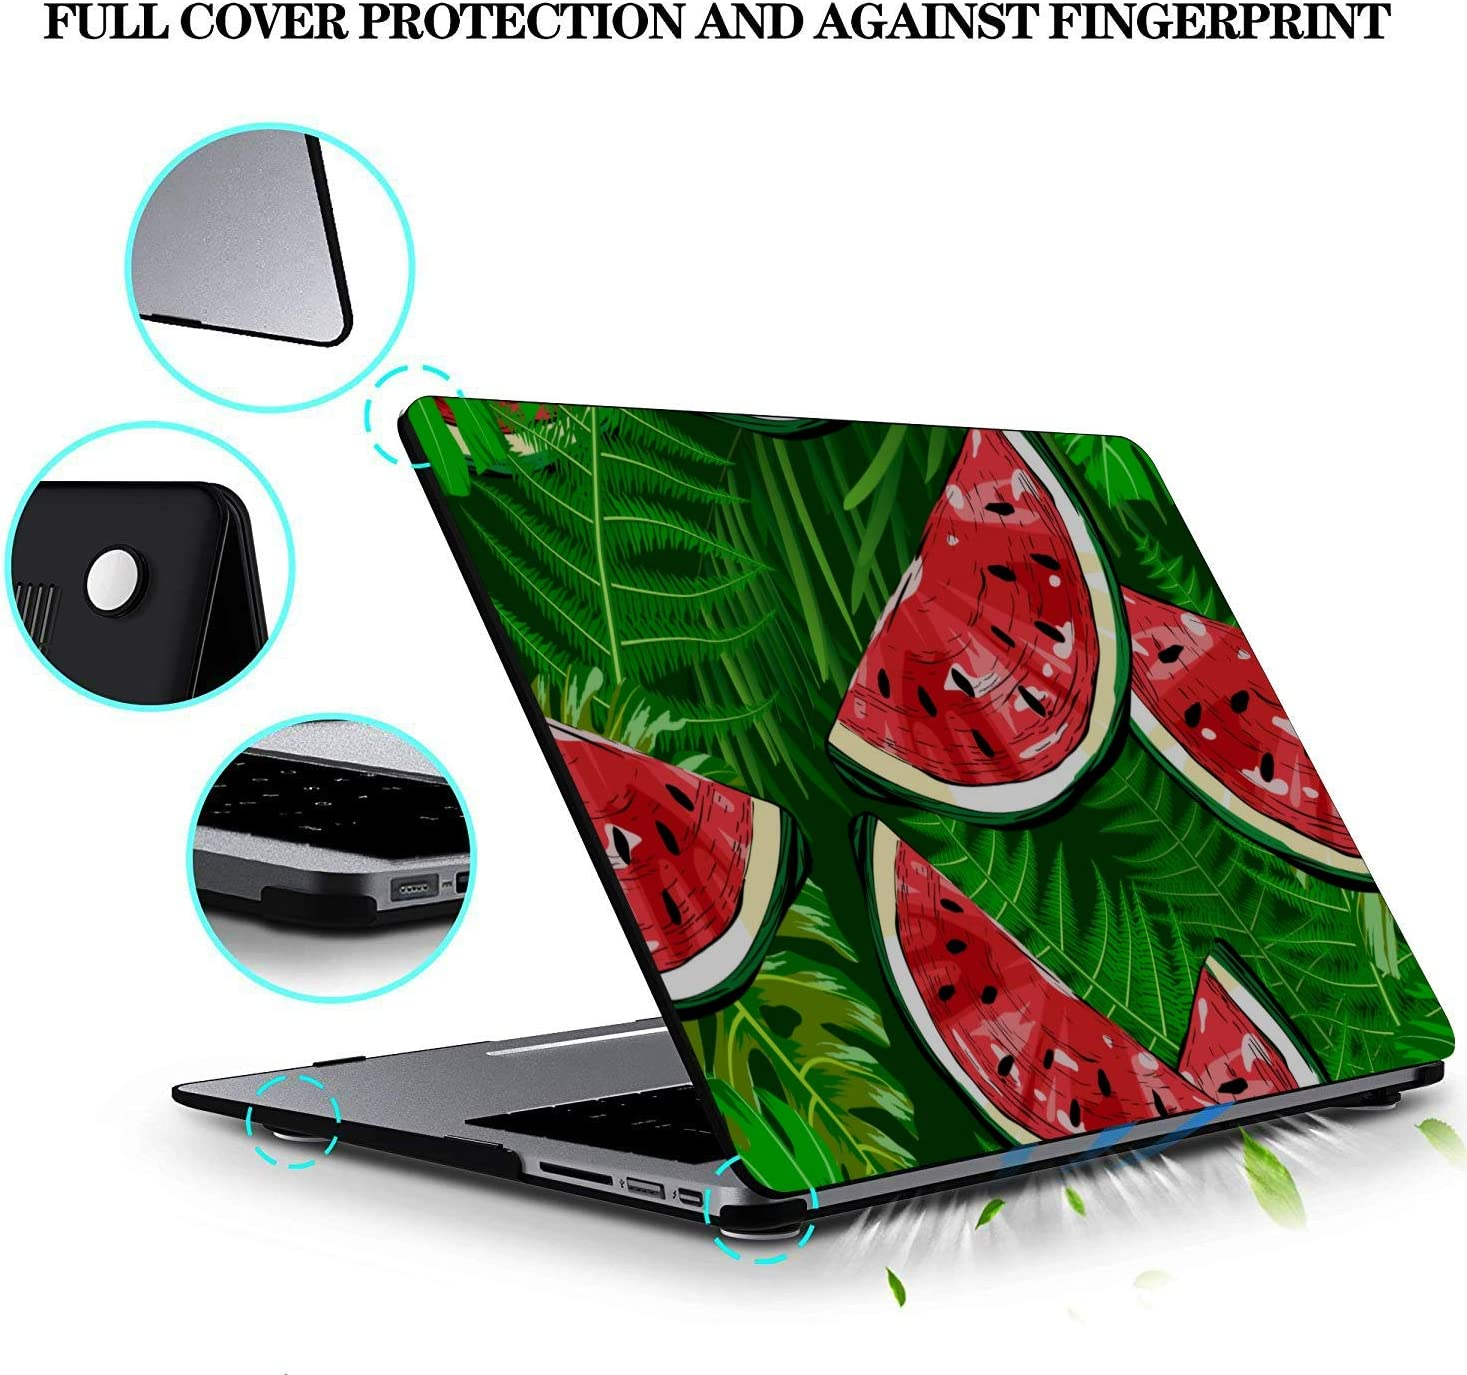 MacBook Pro 13 Cover Summer Fashion Cute Fruit Watermelon Plastic Hard Shell Compatible Mac Air 11 Pro 13 15 Laptop Case Protection for MacBook 2016-2019 Version